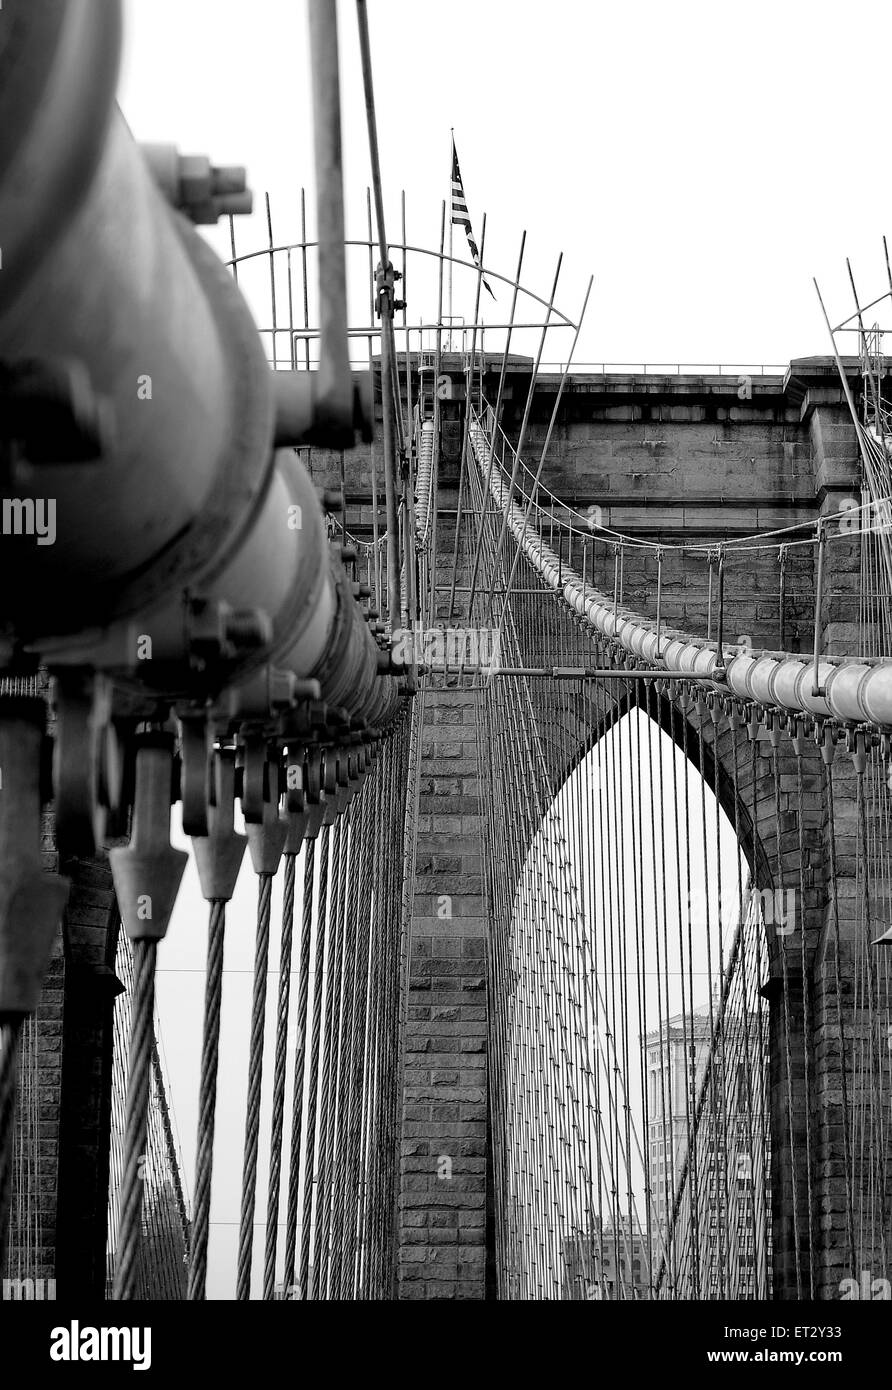 The Brooklyn Bridge spanning the East River from Manhattan to Brooklyn. The Bridge is a hybrid cable-stayed suspension - Stock Image